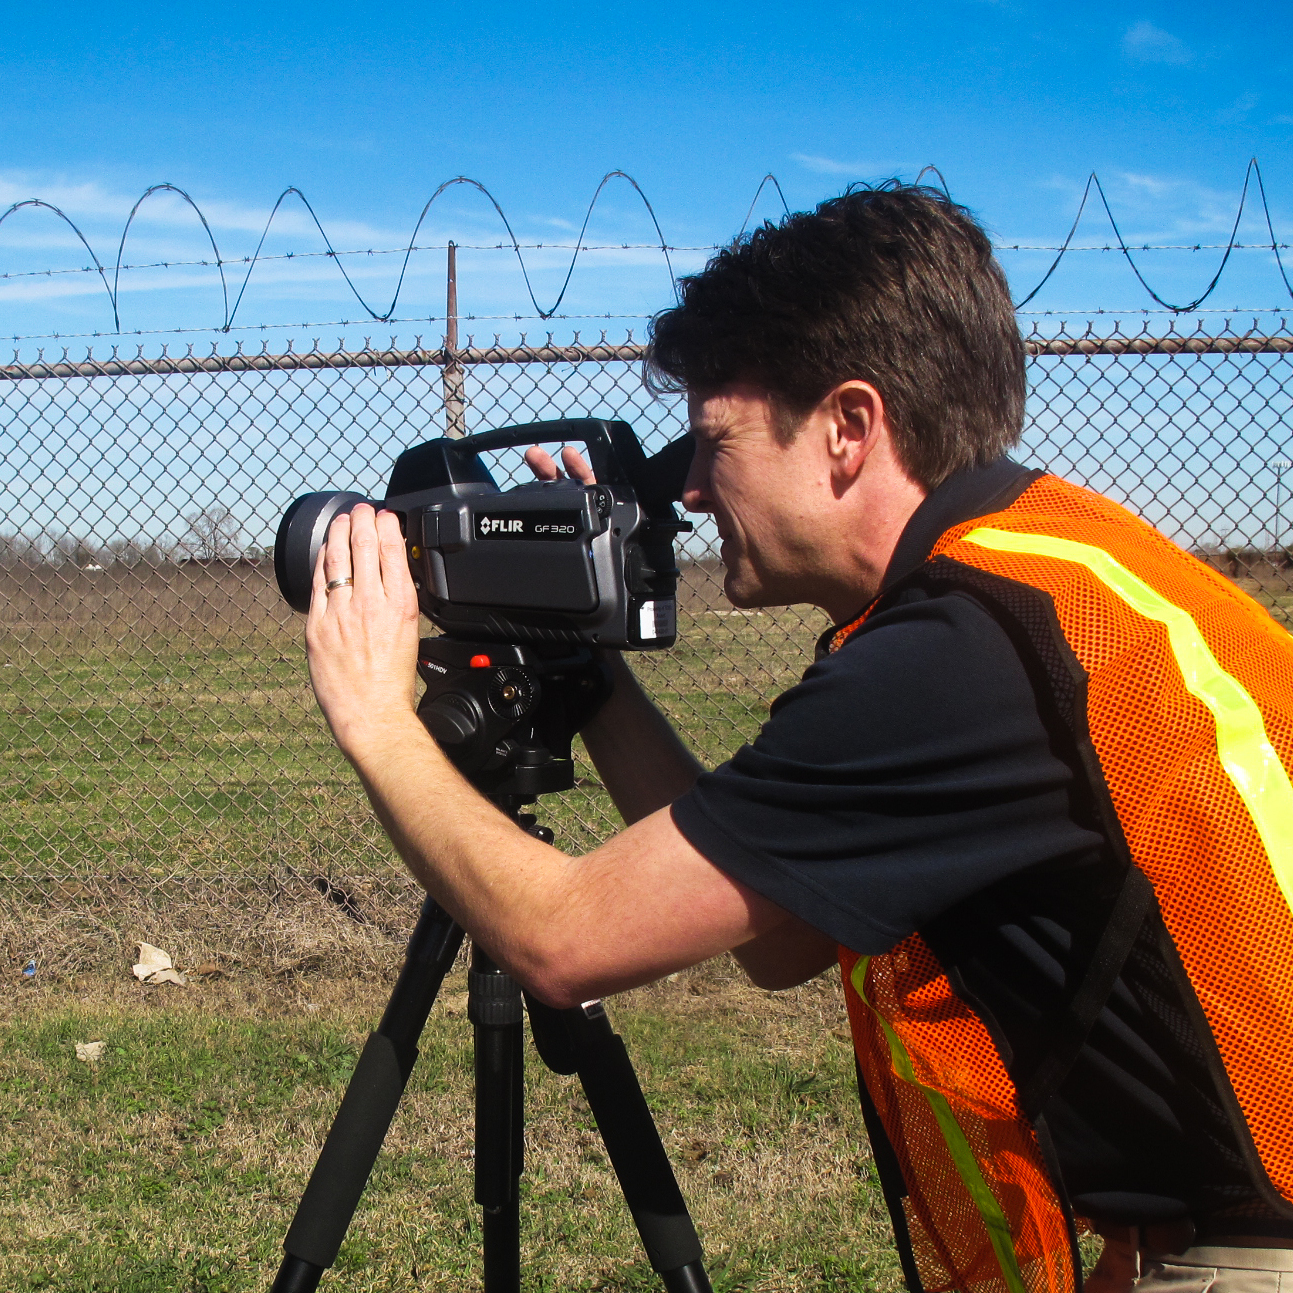 Jason Harris, with the Texas Commission for Environmental Quality, uses an infrared camera to find leaks at a chemical facility near the Houston Ship Channel. The specialty cameras cost around $100,000.